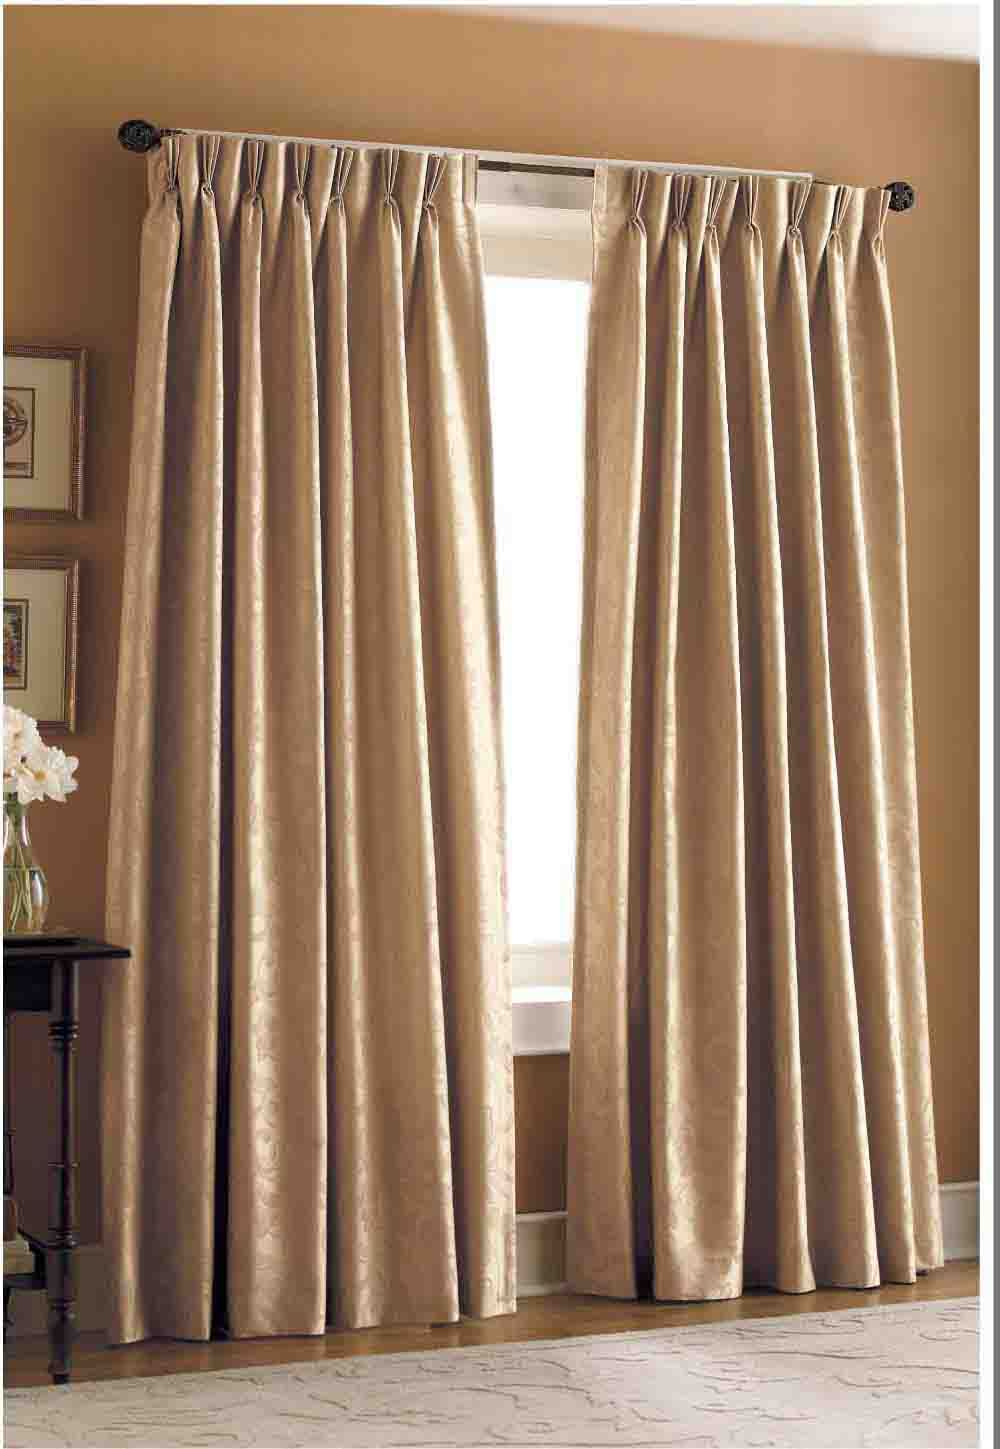 See full size image | certain touch | Pinterest | Pleated curtains ...